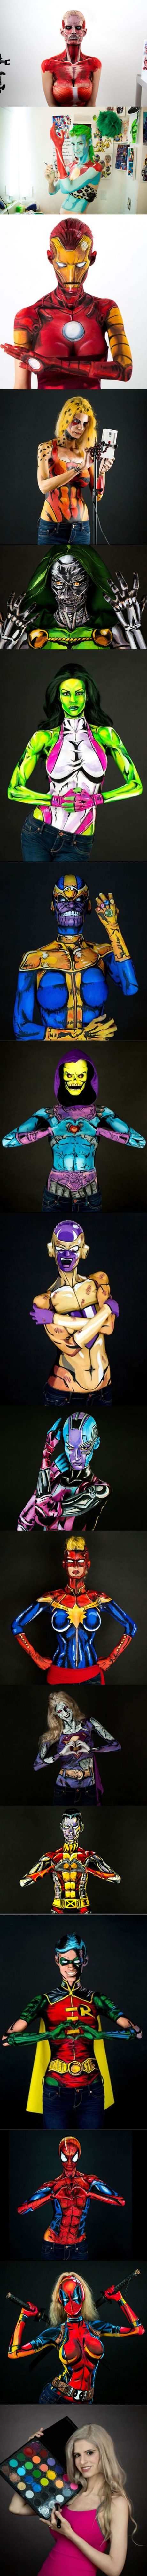 Artist Transforms Herself Into Comic Book Heroes And Villains Using Just Body Paint (By Kay Pike)